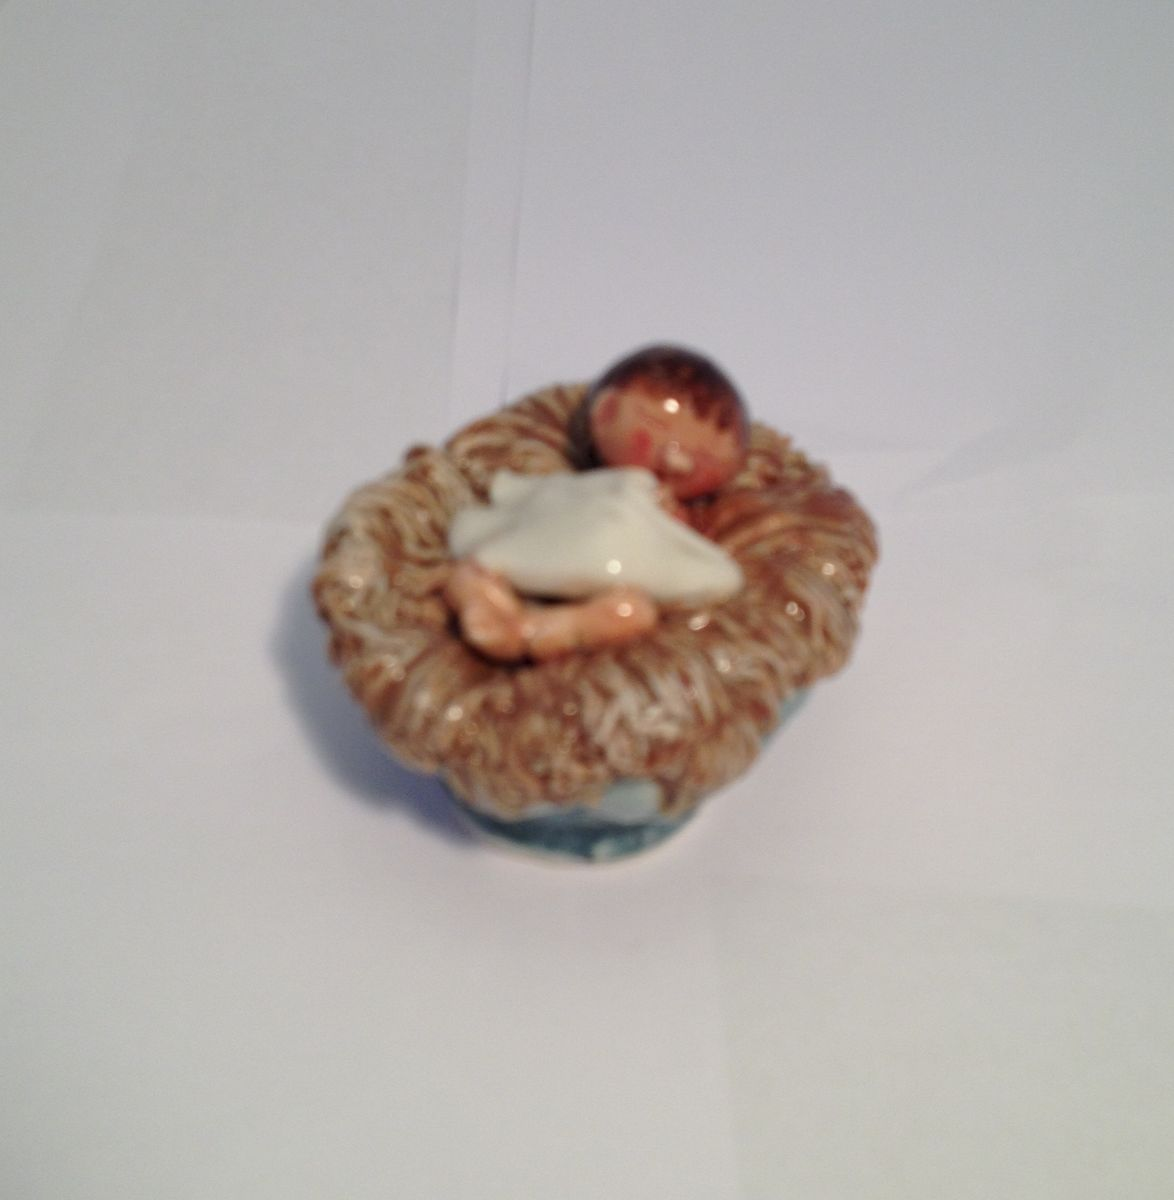 Abbey Crafts Nativity Set - Baby Jesus - product images  of